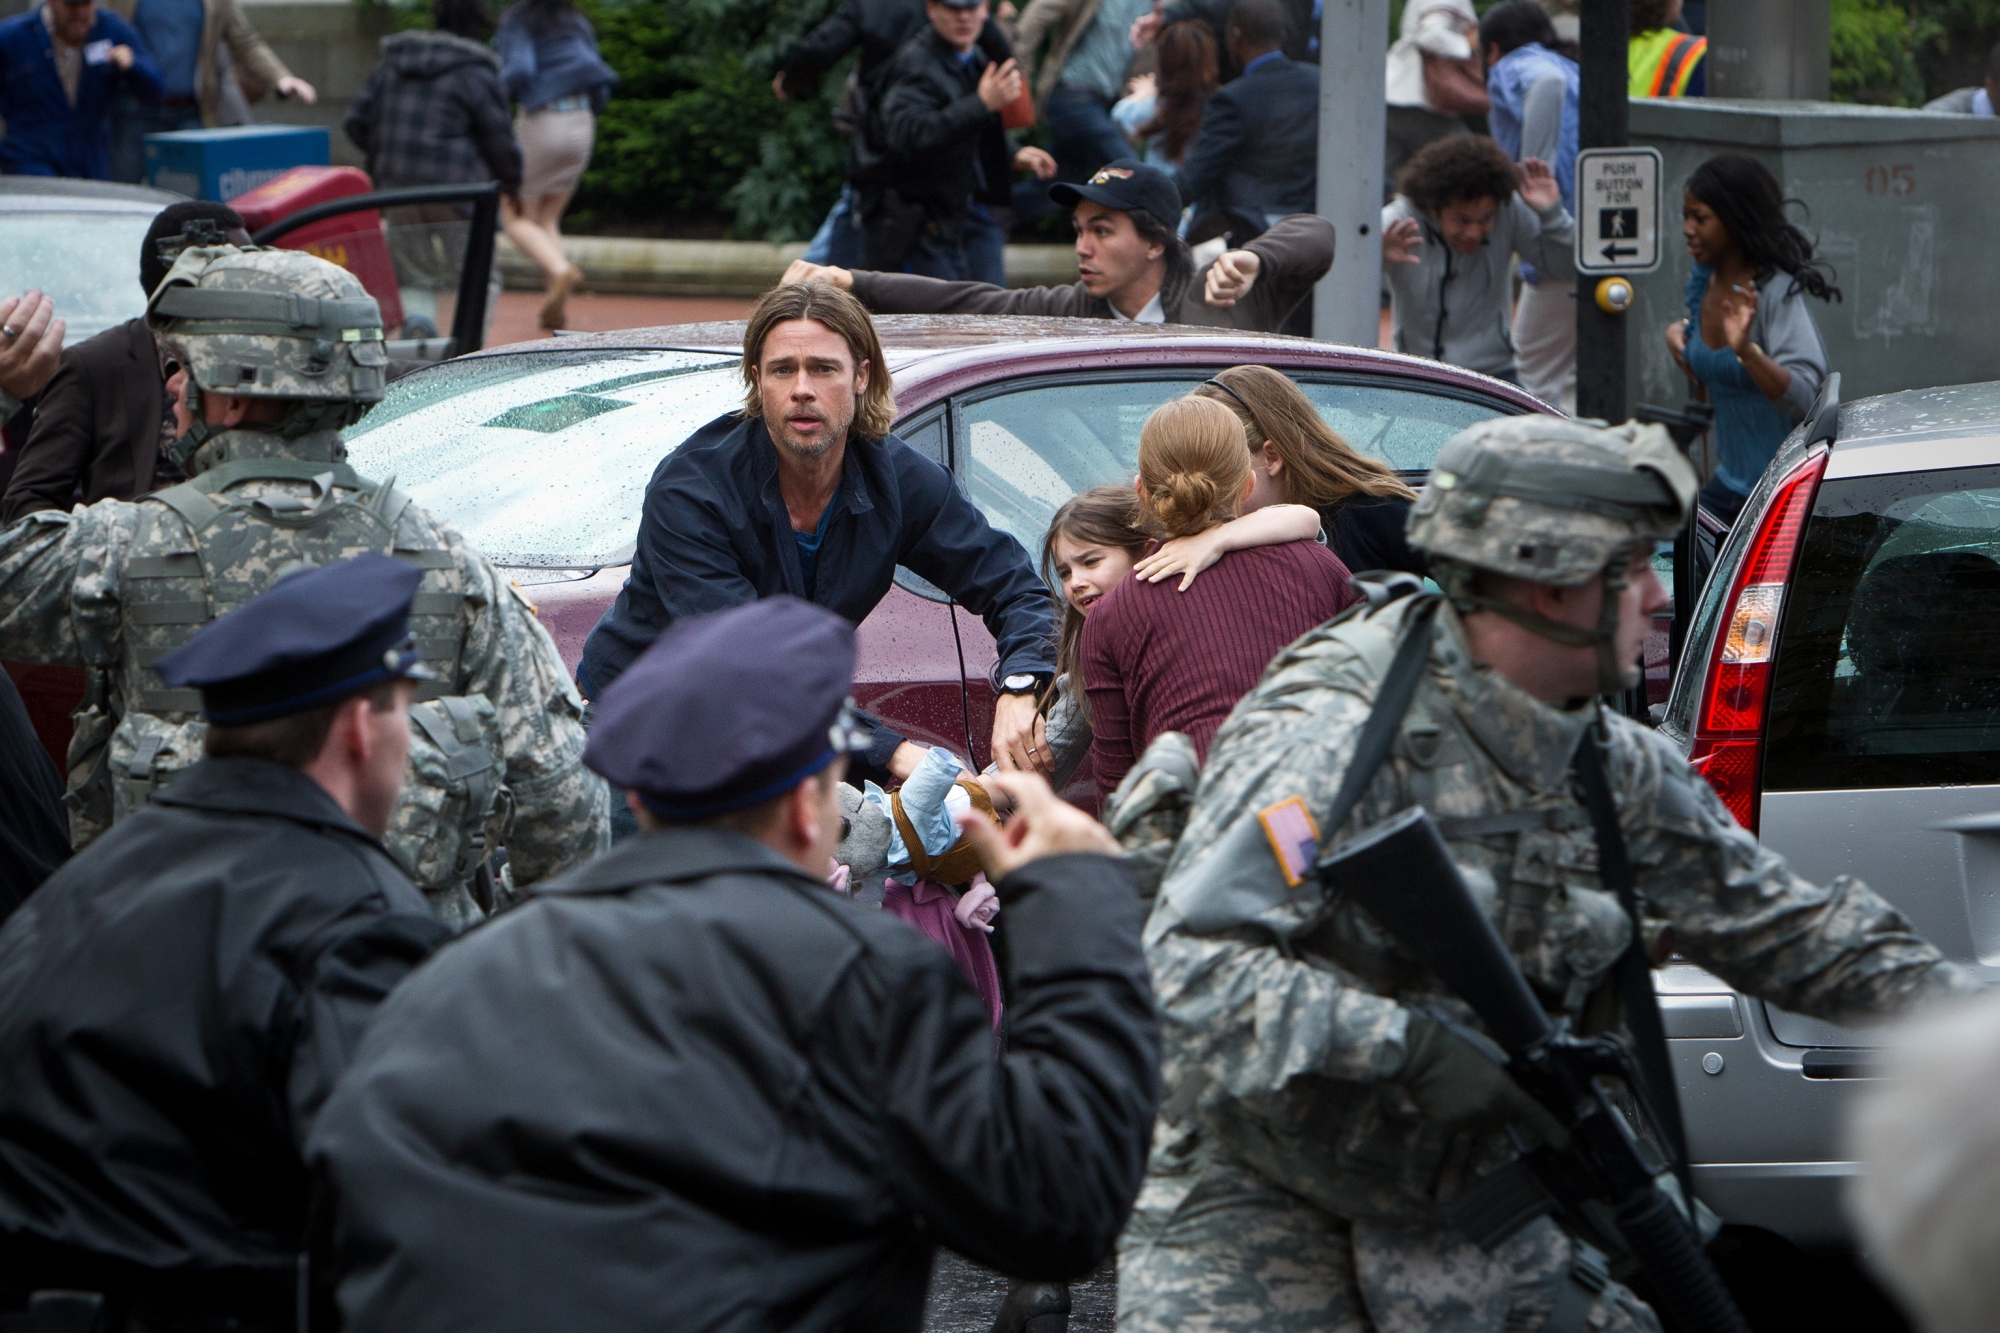 Brad Pitt World War Z, New Film 2013